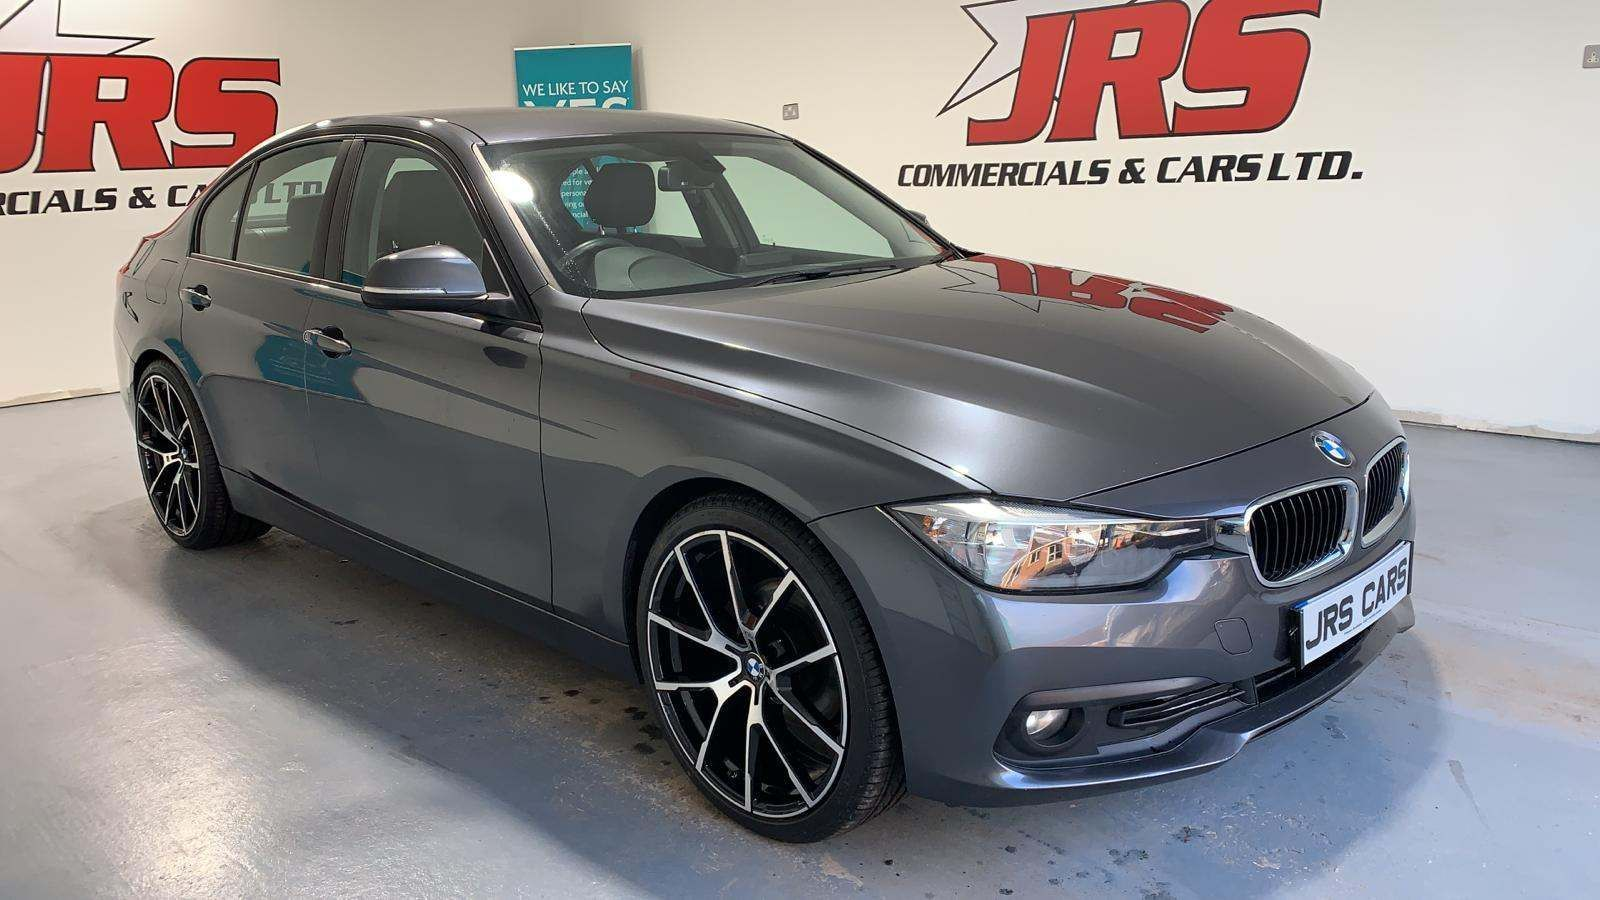 2016 BMW 3 Series 2.0 320d BluePerformance ED Plus Auto (s/s) Diesel Automatic **£0 Road Tax** – J R S Commercials And Cars Dungannon